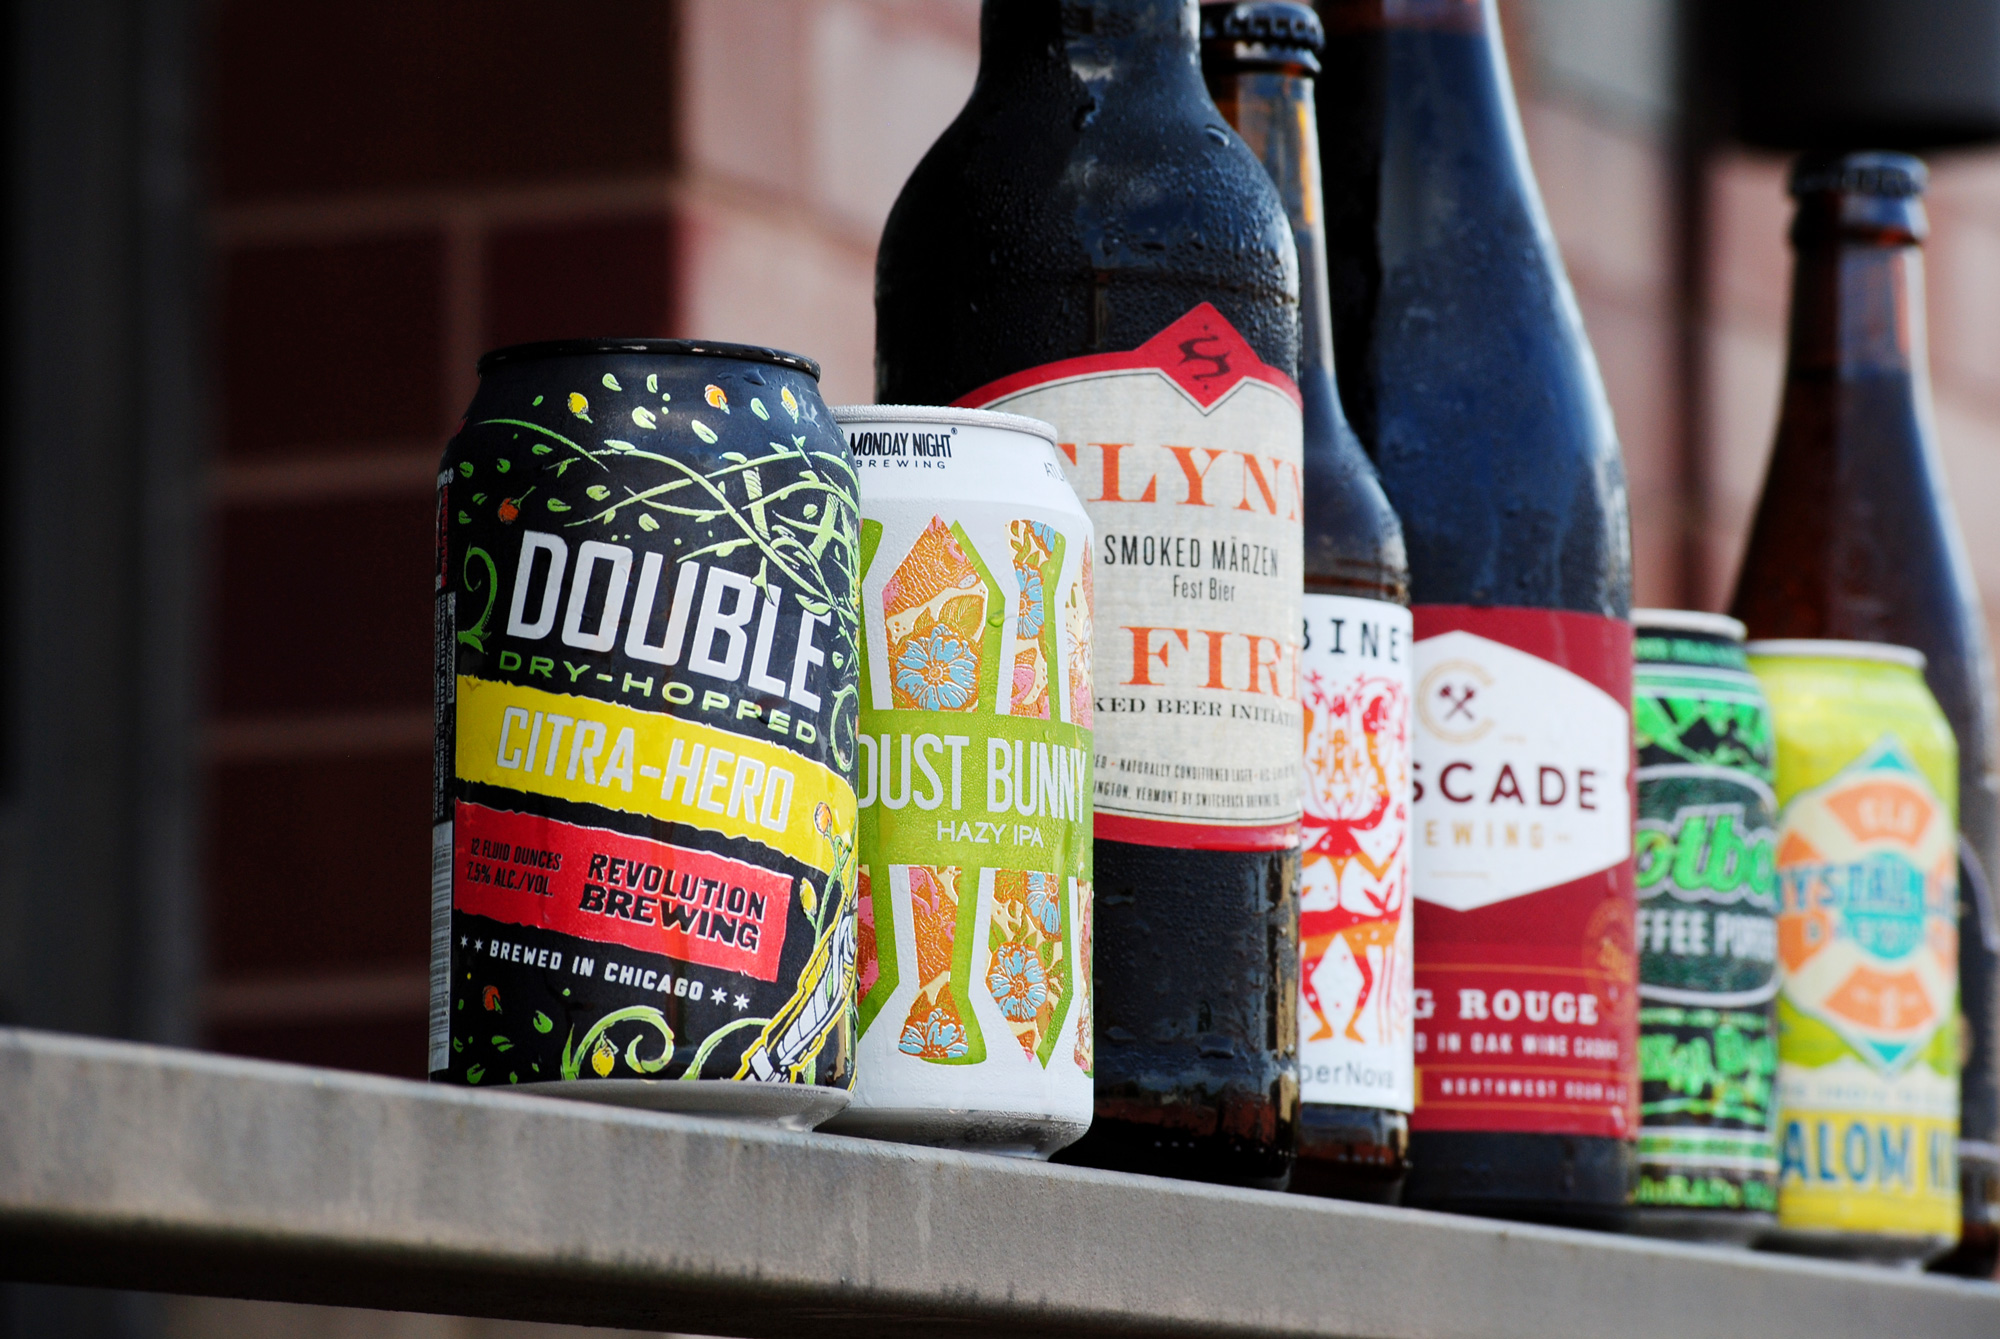 The Hop Reviews Vol. 28: A September Beer Review